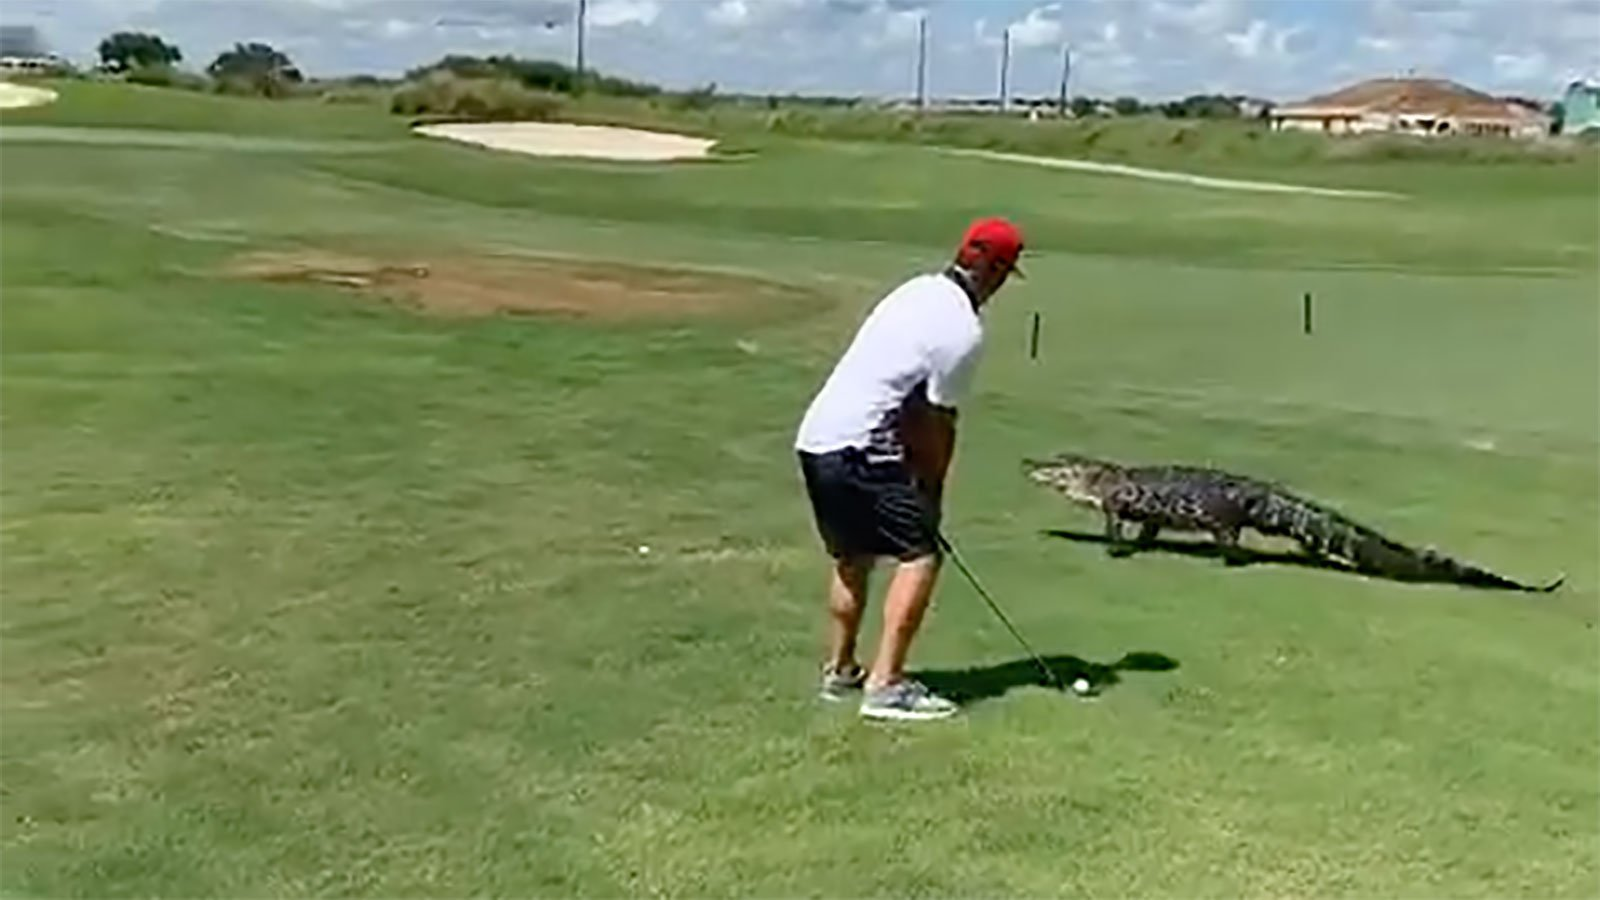 Florida golfer ignores scary alligator strolling next to him